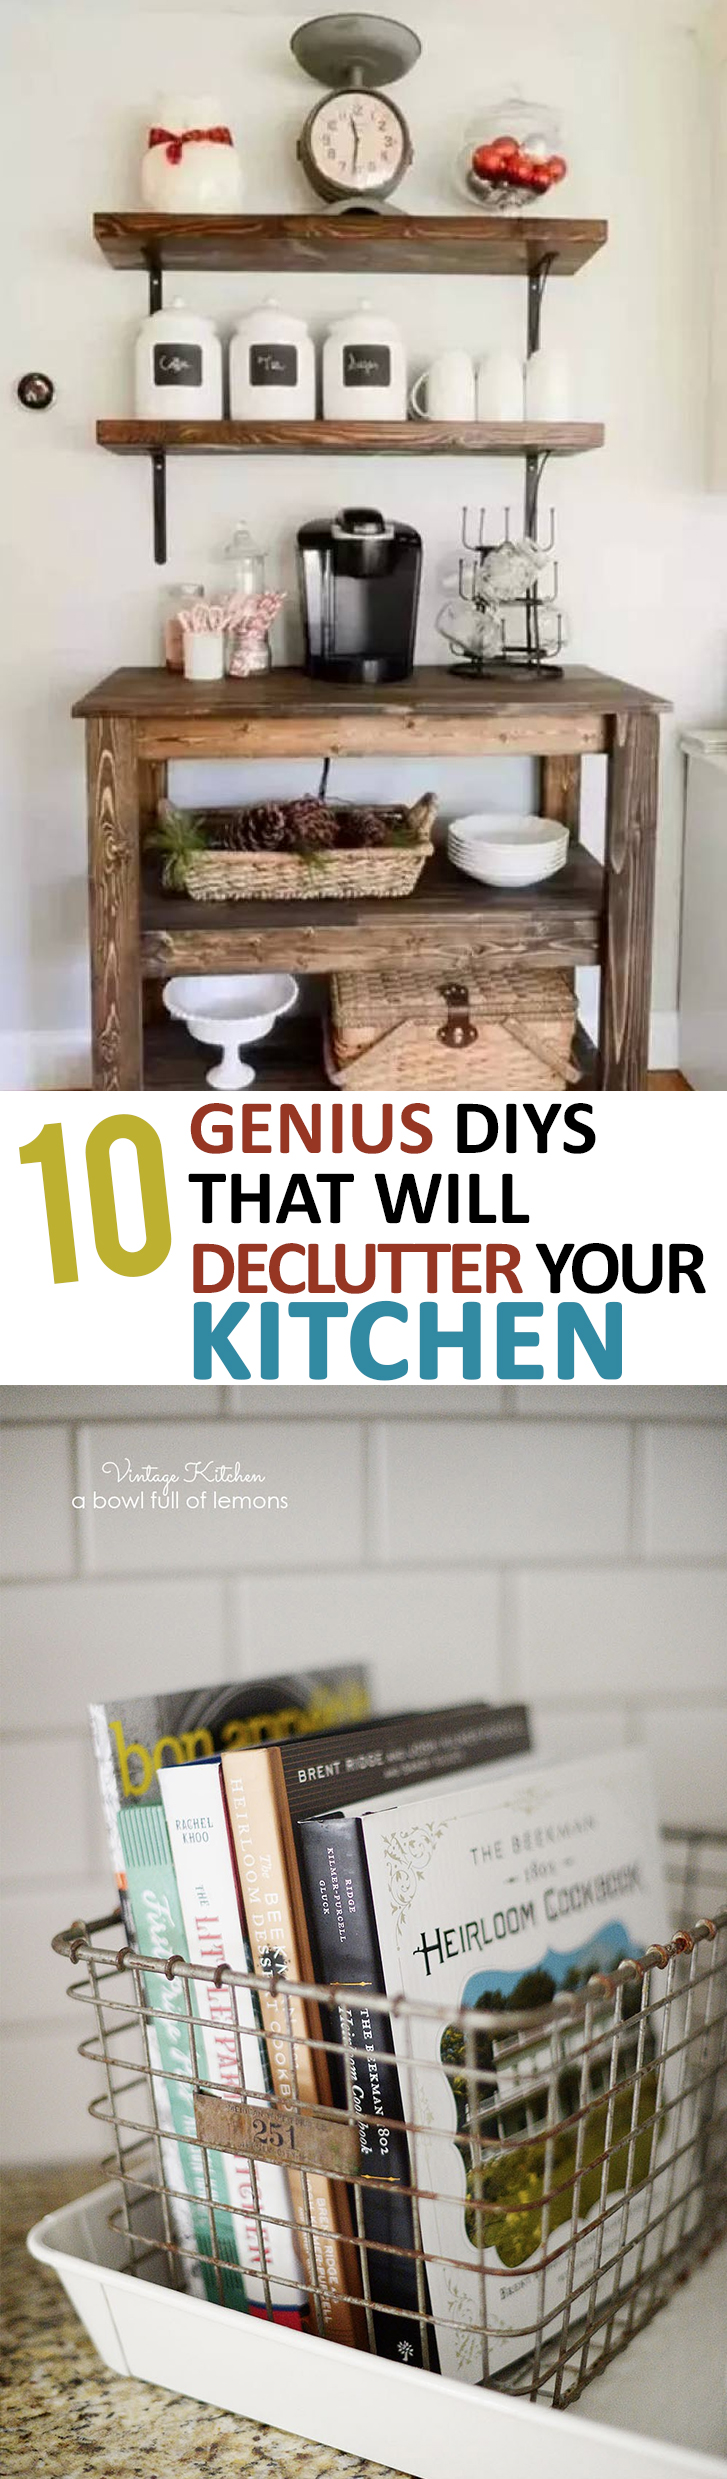 Declutter Your Kitchen, Kitchen Organization, Kitchen Organization Hacks, Popular Pin, Kitchen DIY, DIY Kitchen Projects, Kitchen Hacks, Kitchen Design Tips, Rustic Kitchen